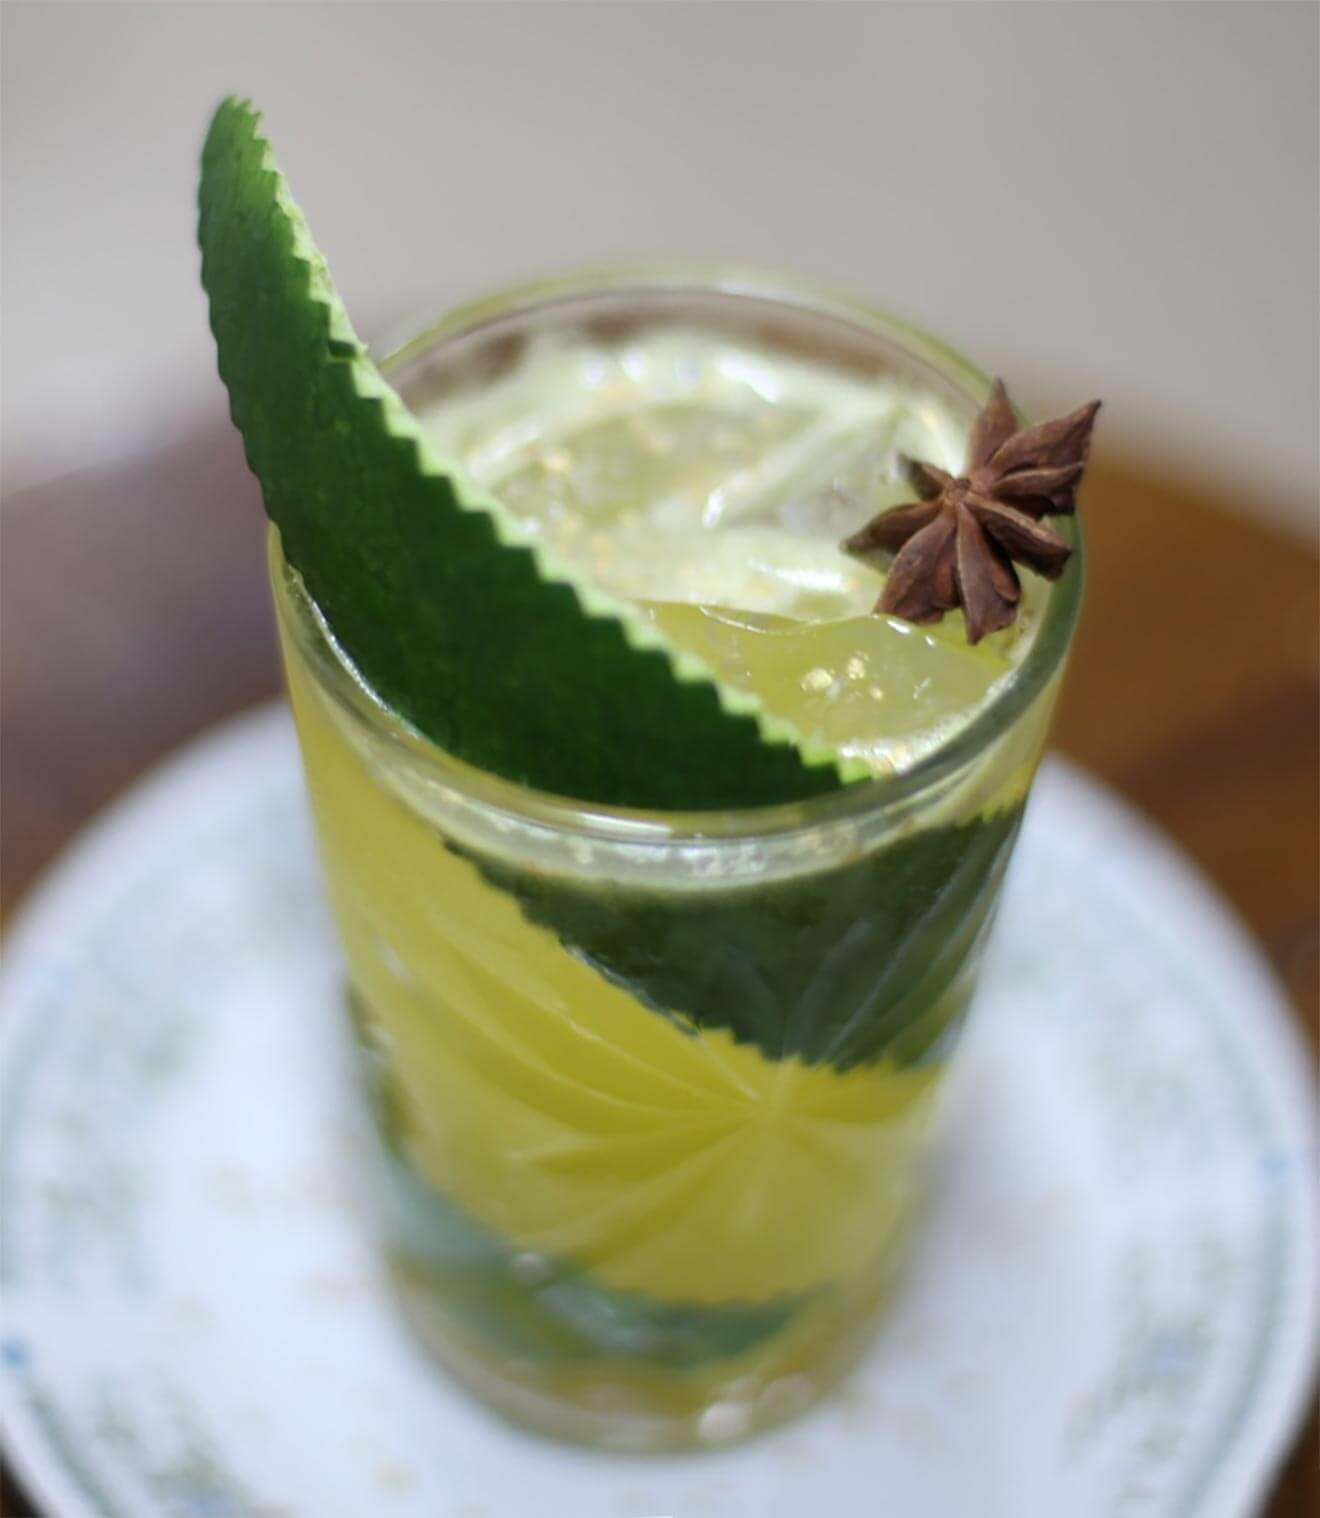 Chilled Drink of the Week: Bayou Rum Against All Odds